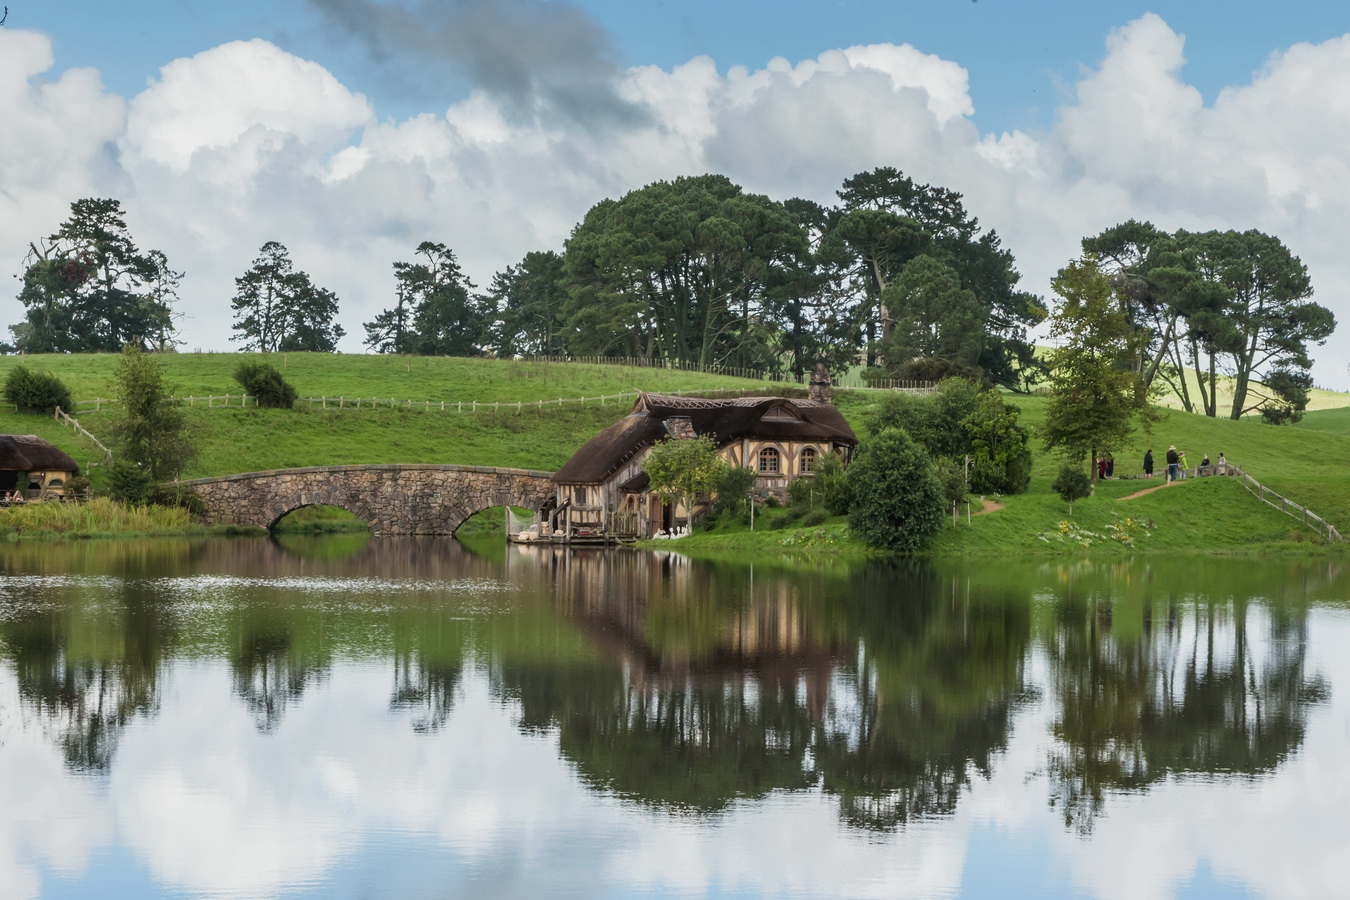 mill,bridge,hill,reflection,The Hobbiton, The Shire,Хоббитшир, Удел, Хоббитания, Заселье, Край,Matamata, North Island ,New Zealand